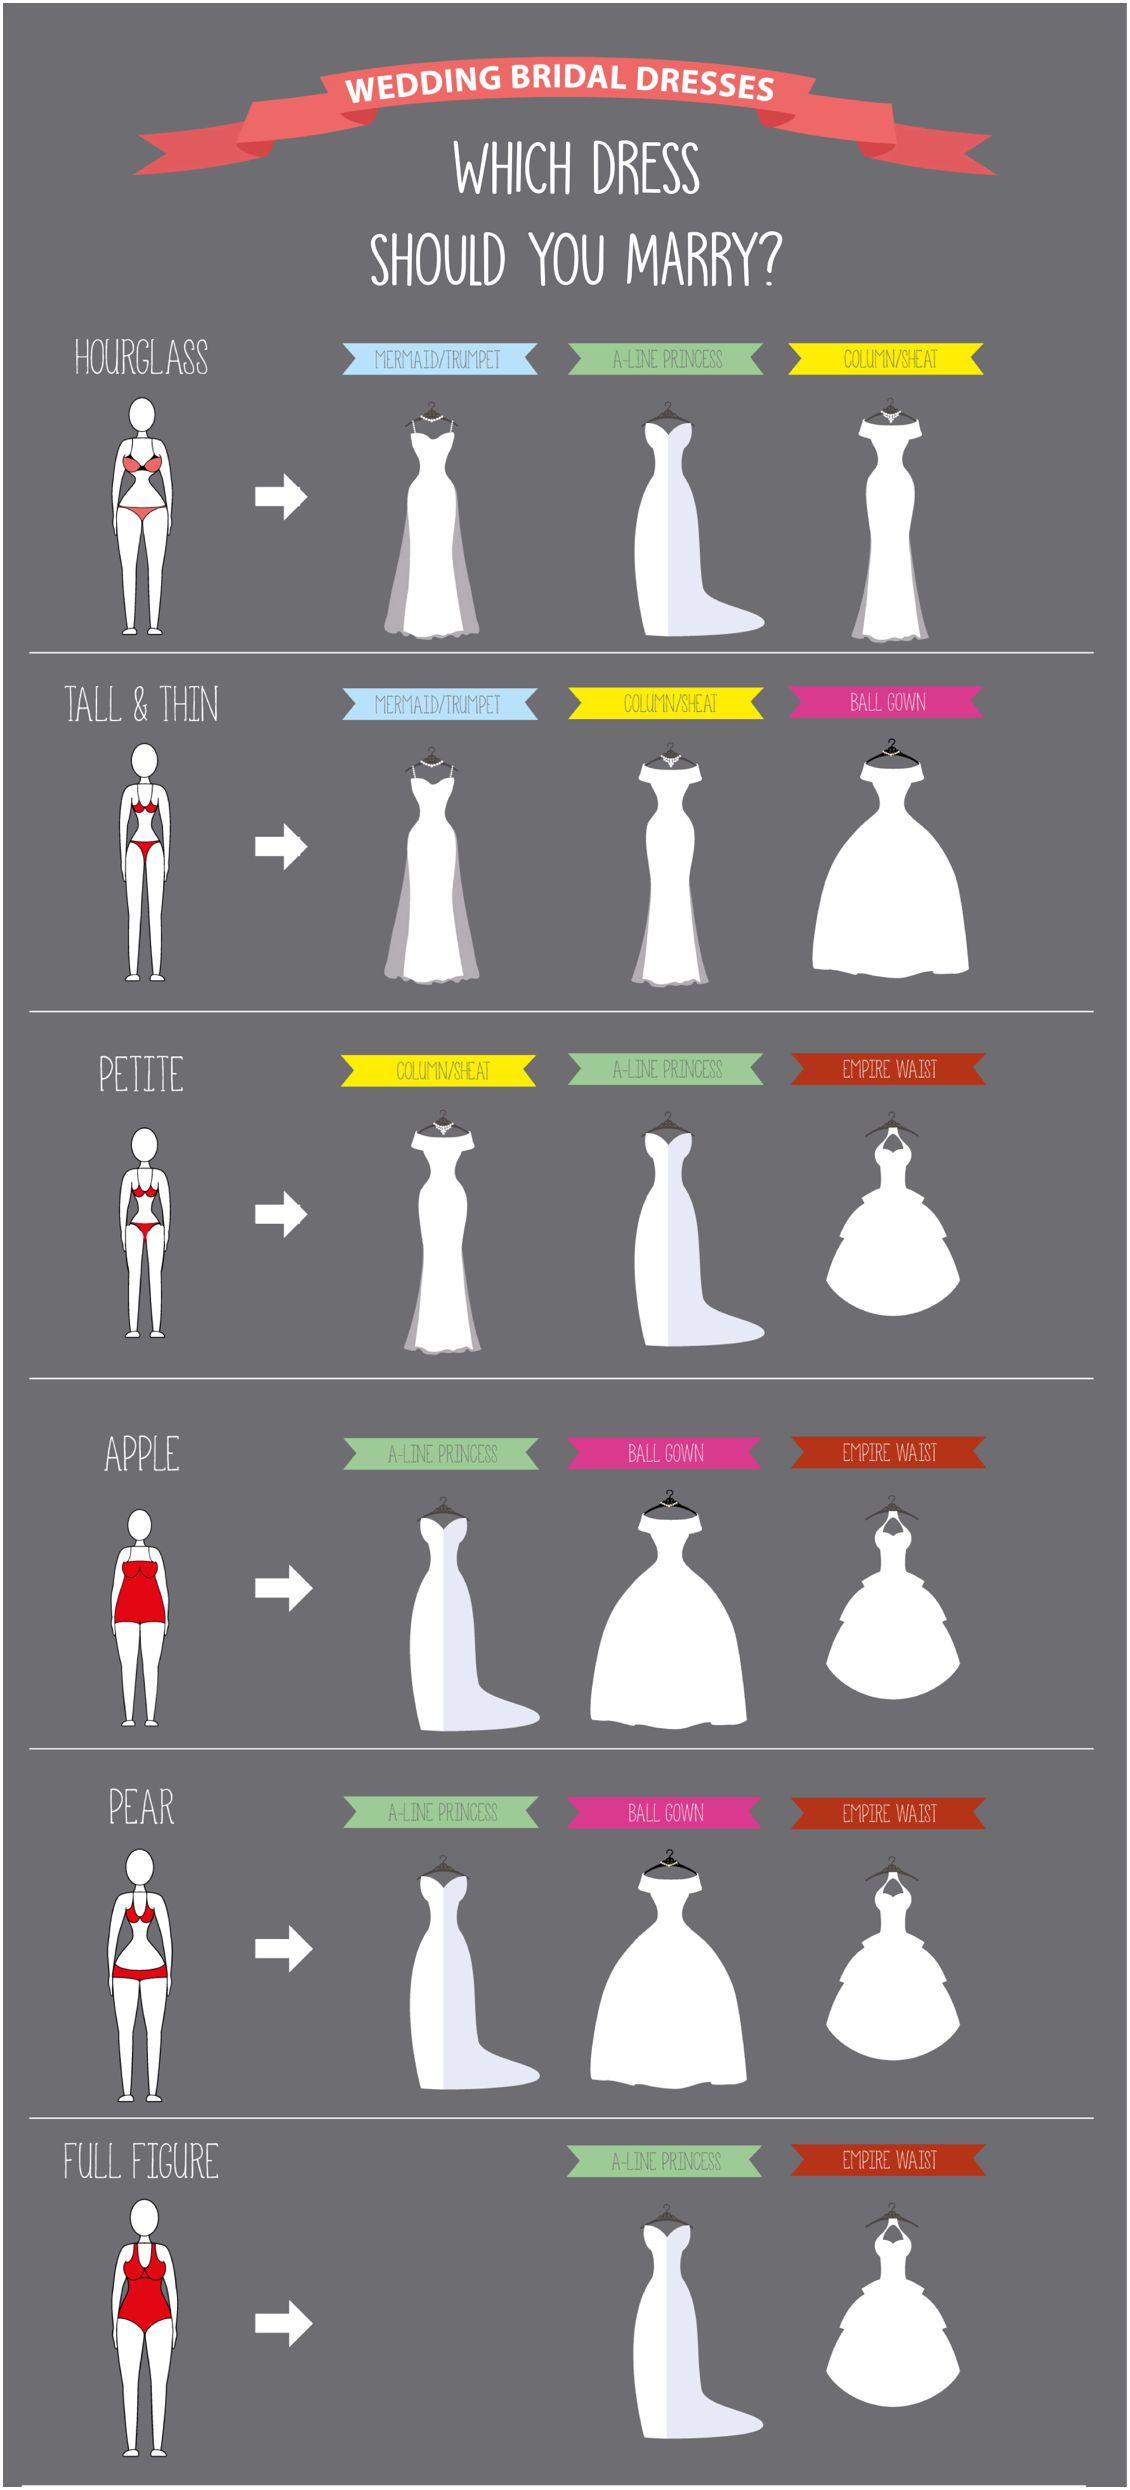 Finding The Best Wedding Dress For Your Body Type Pink Book